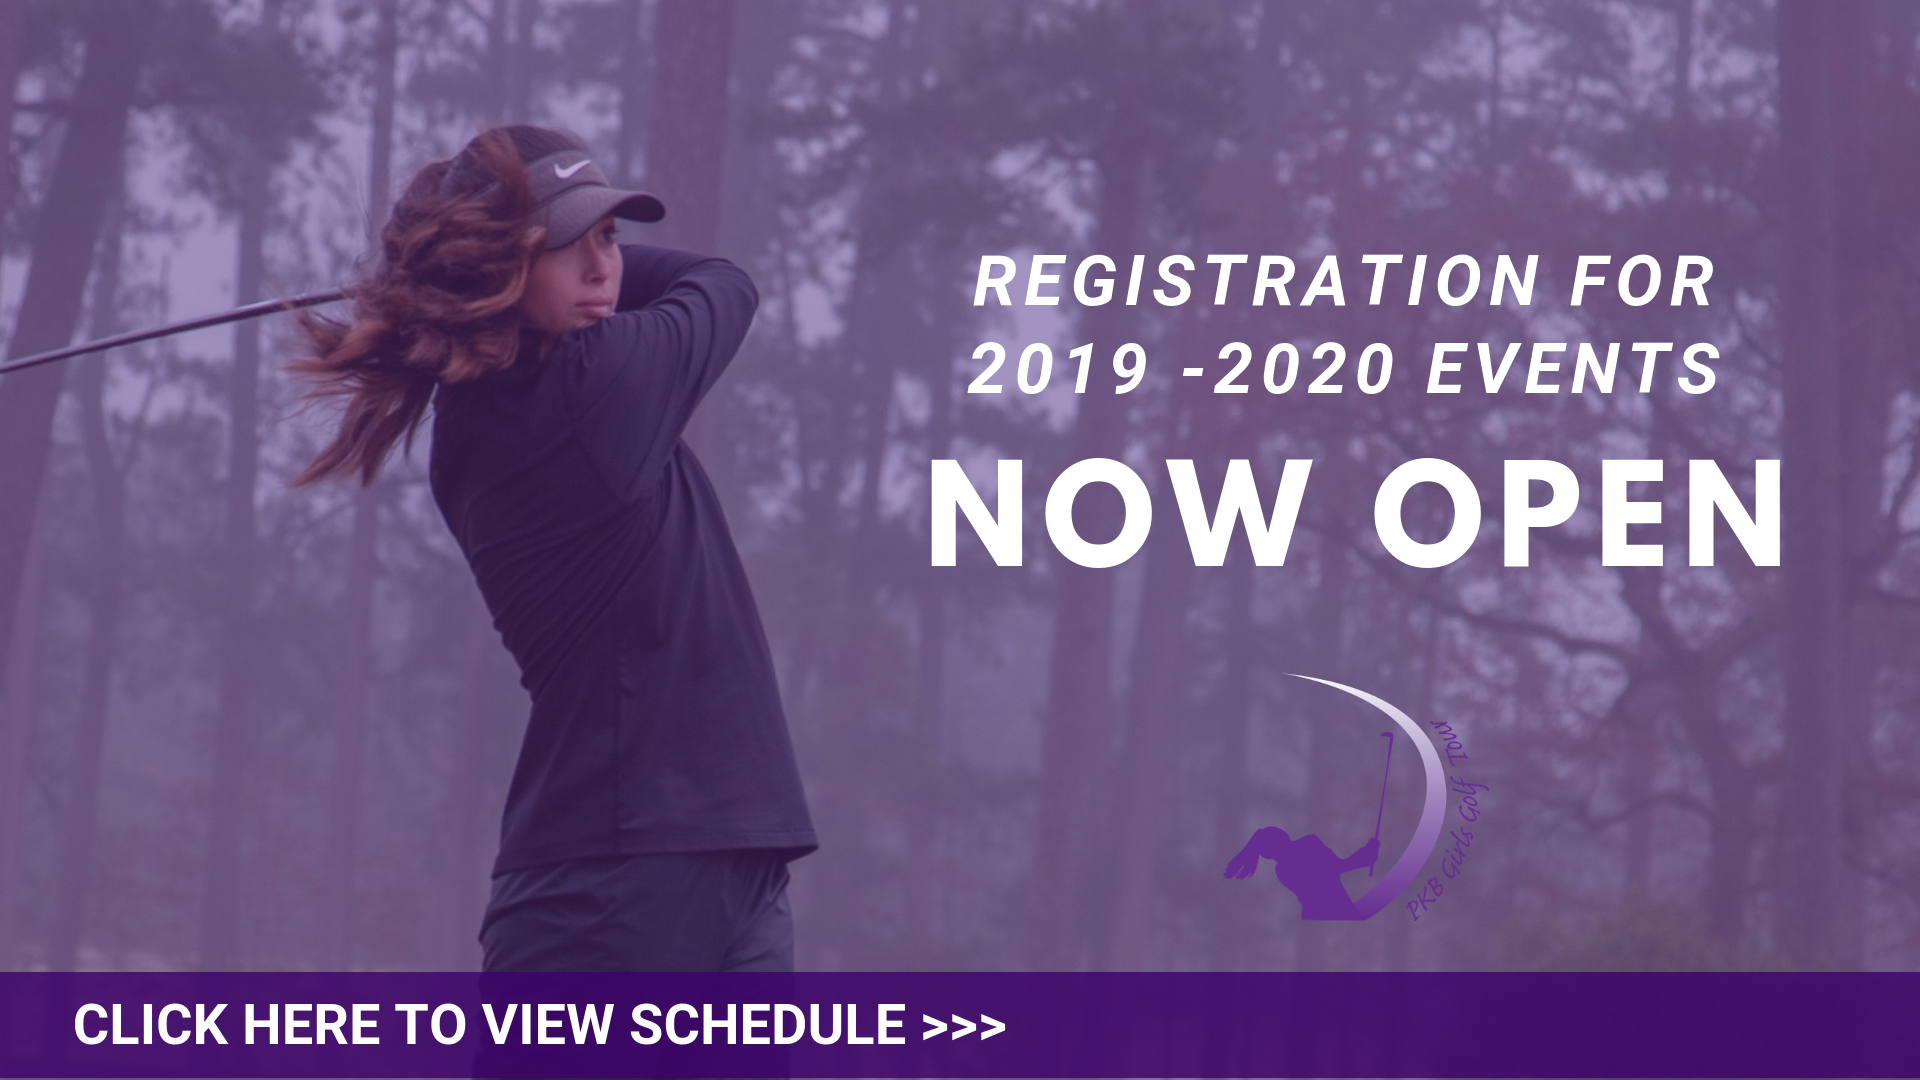 Registration for PKBGT 2020 Schedule Fall Events Now Open!